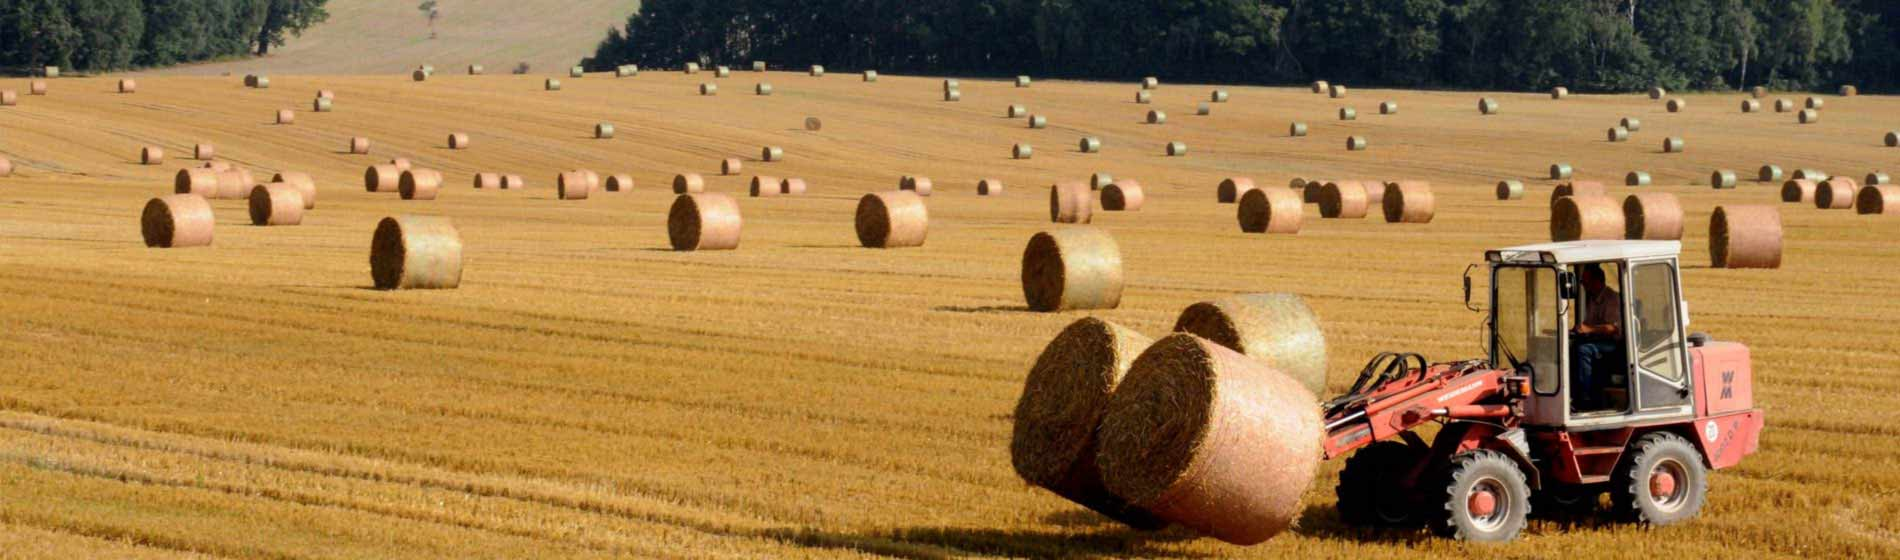 SAP Business One for Agriculture and Horticulture